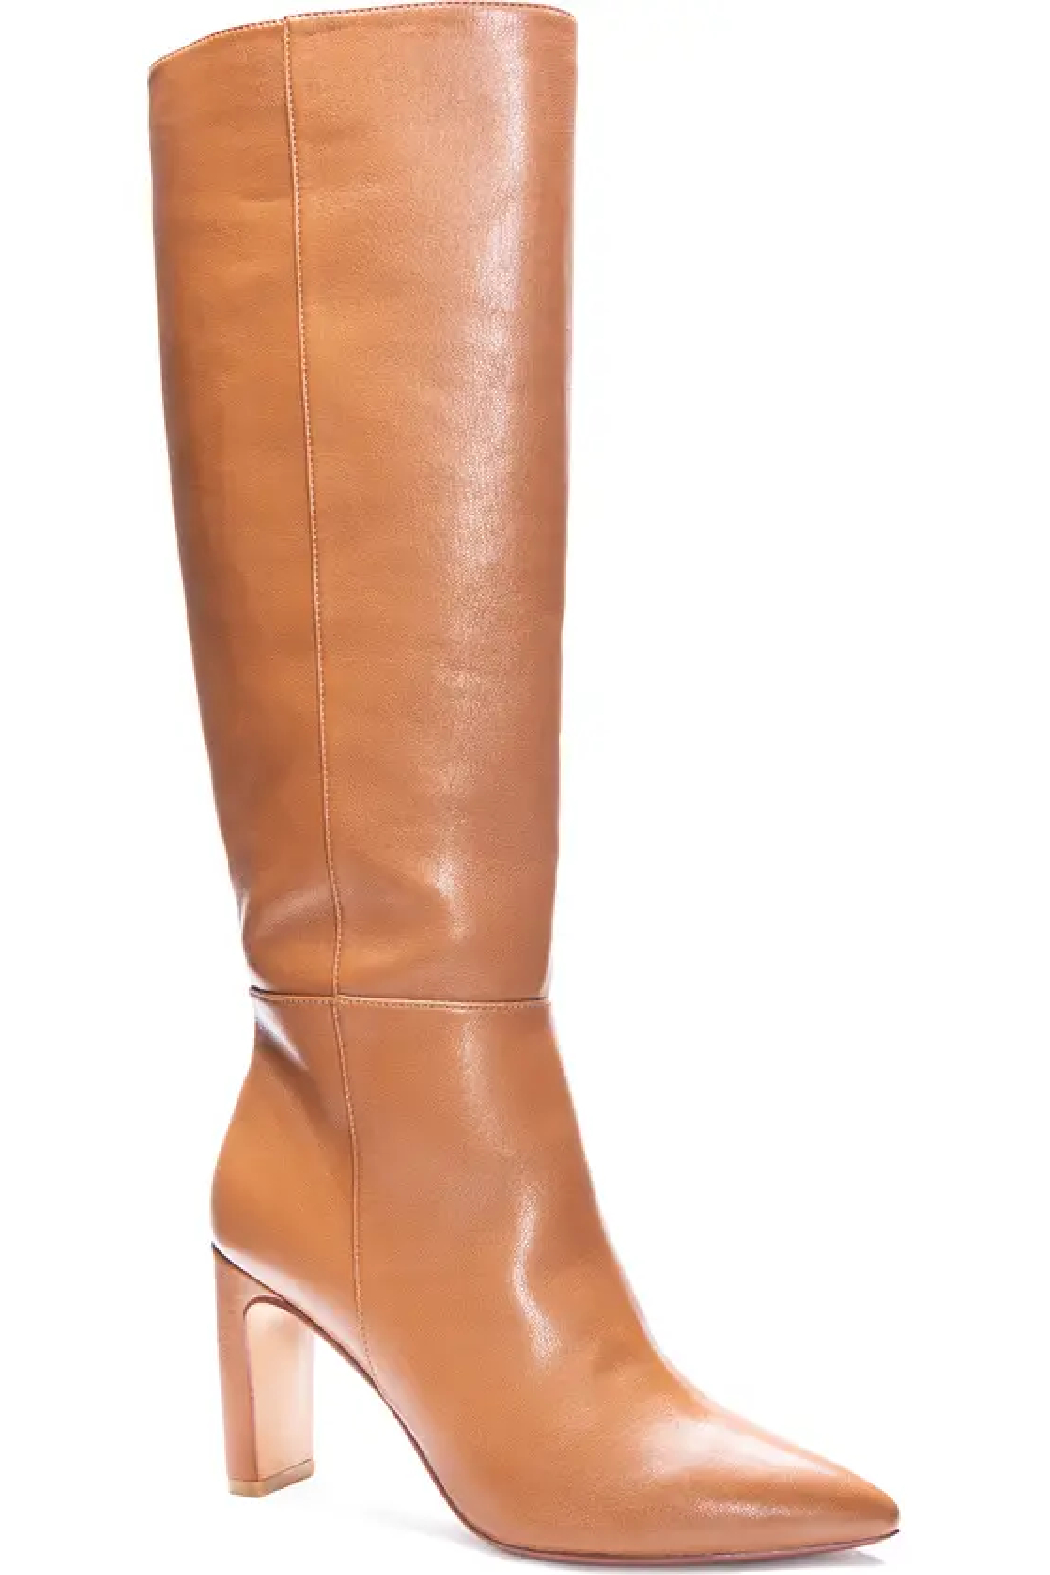 Chinese Laundry Evanna Knee-High Boot - Front Full Image